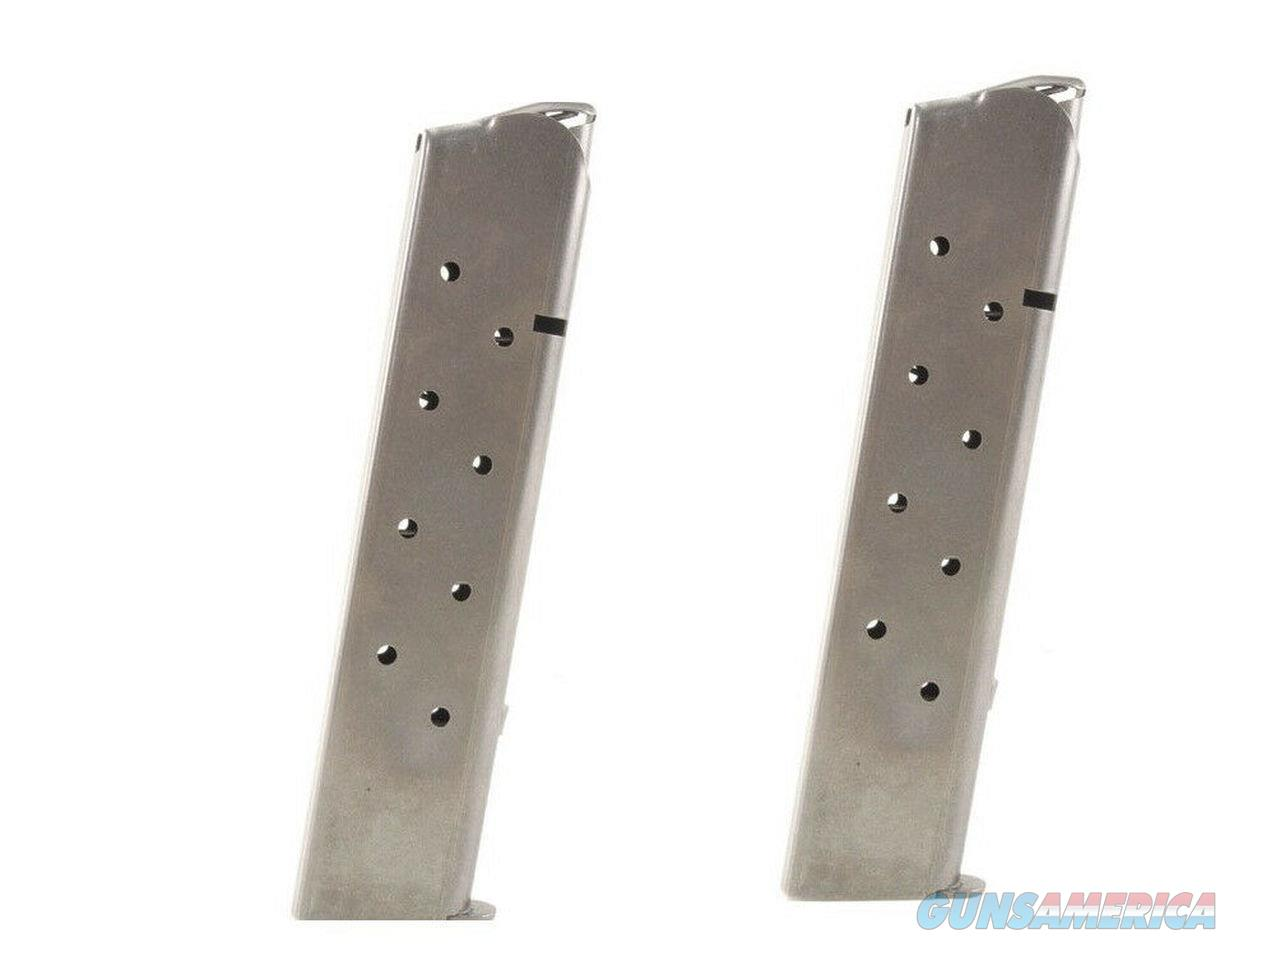 10 Pack Kimber 1911 Full-Size Magazines Mag 10 Round EXTENDED MAGS Made in USA!!   Non-Guns > Ammunition